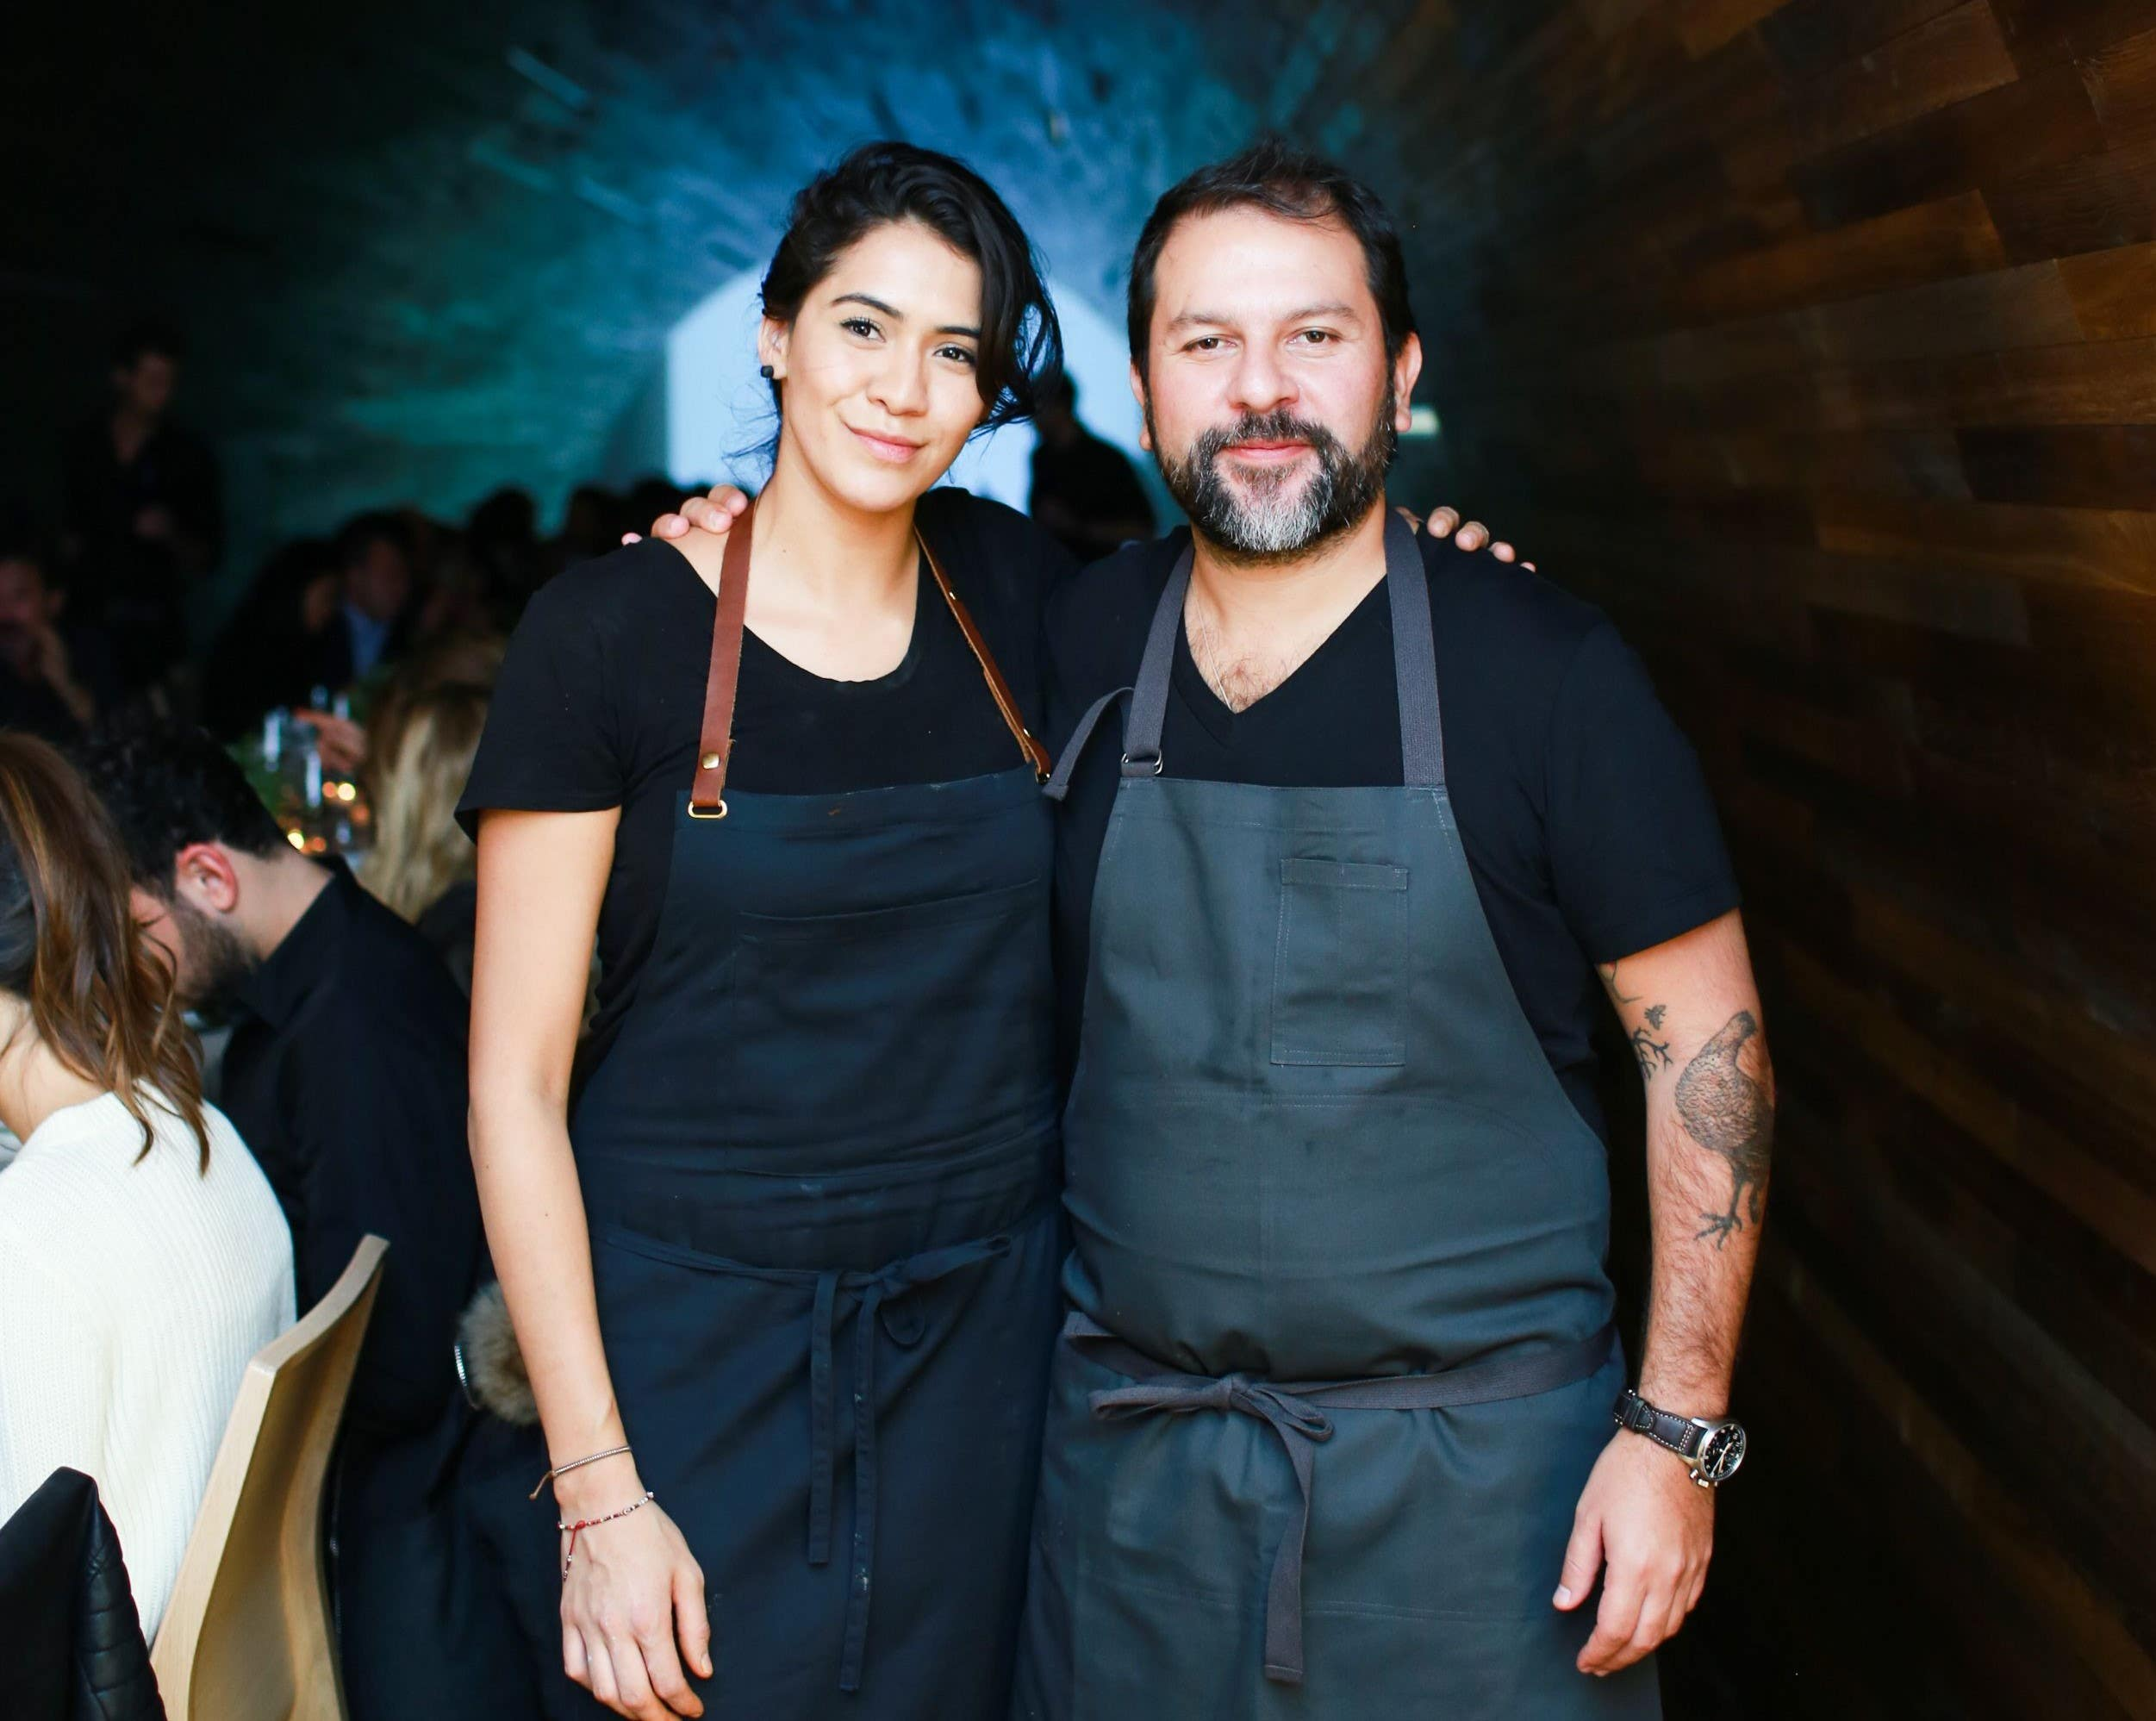 Daniela Soto-Innes and Enrique Olvera at the Cosme 2nd Anniversary Dinner